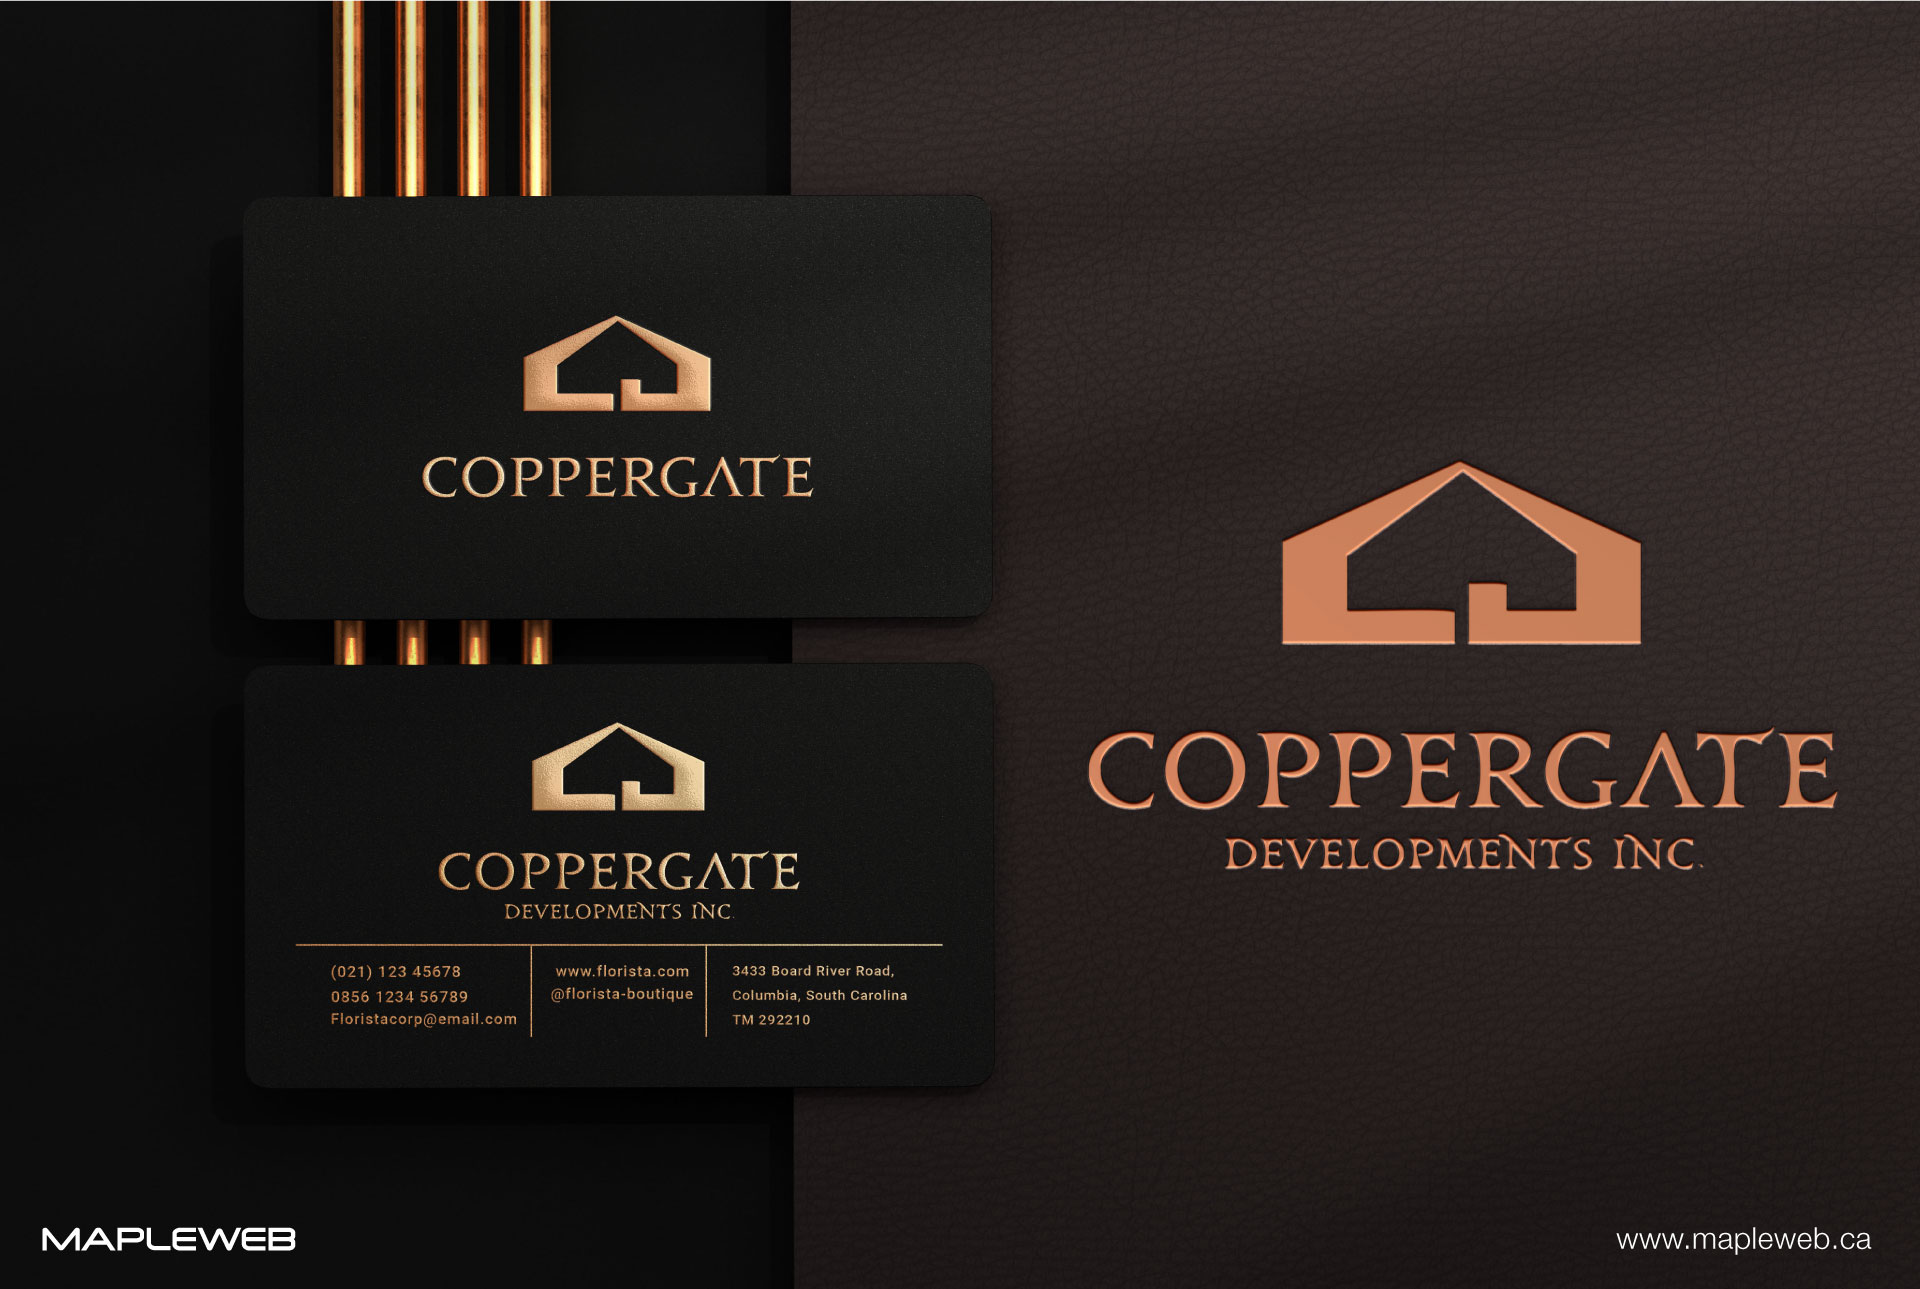 coppergate-brand-logo-design-by-mapleweb-vancouver-canada-black-folded-business-card-mock